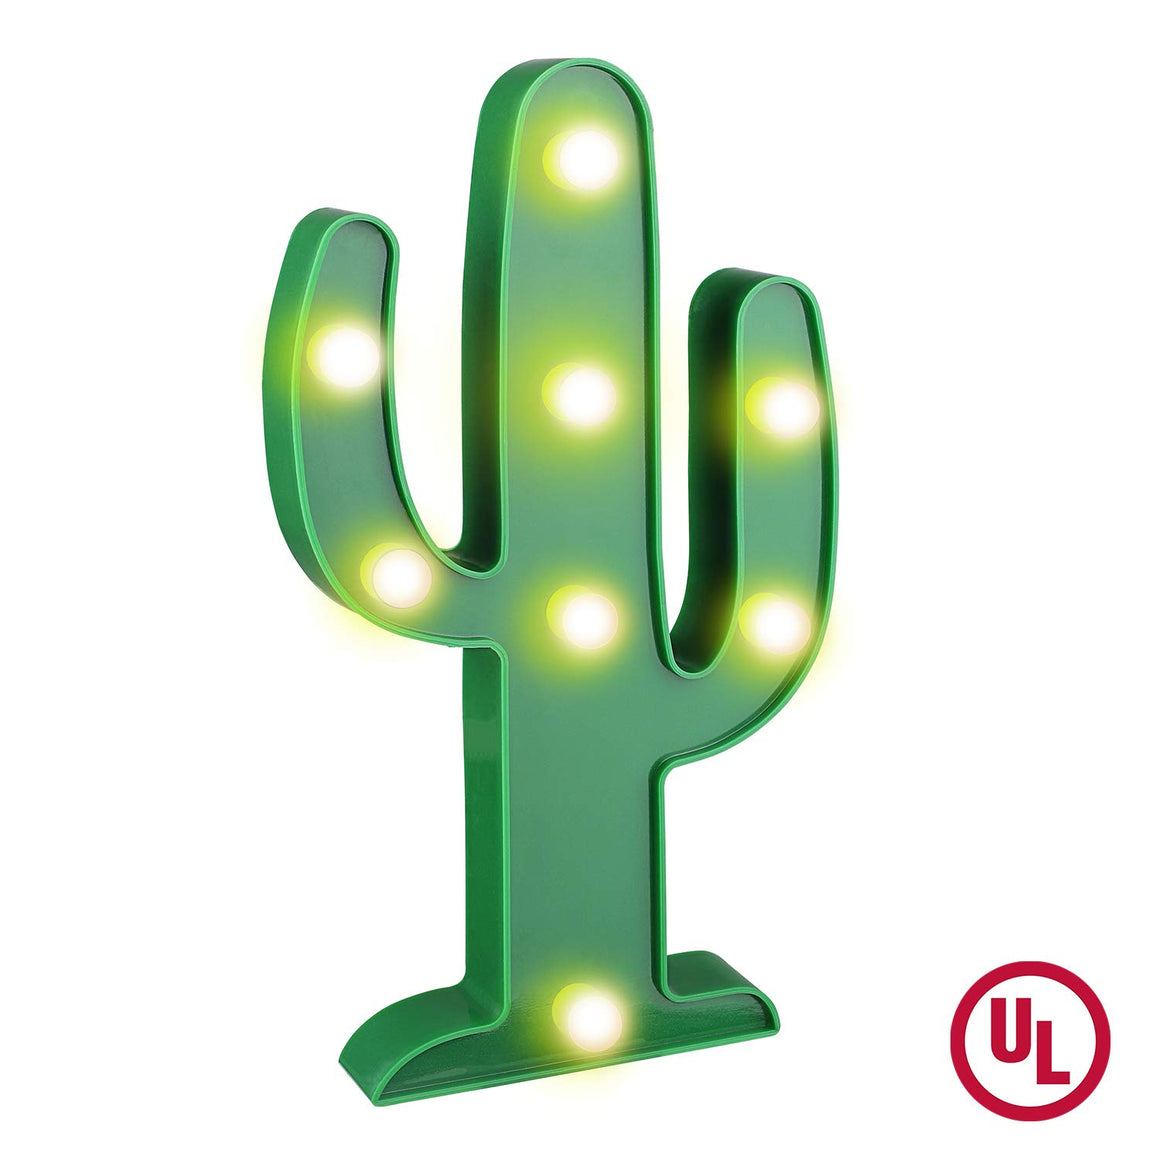 LED Cactus Light - Popcheeks Printed Undies